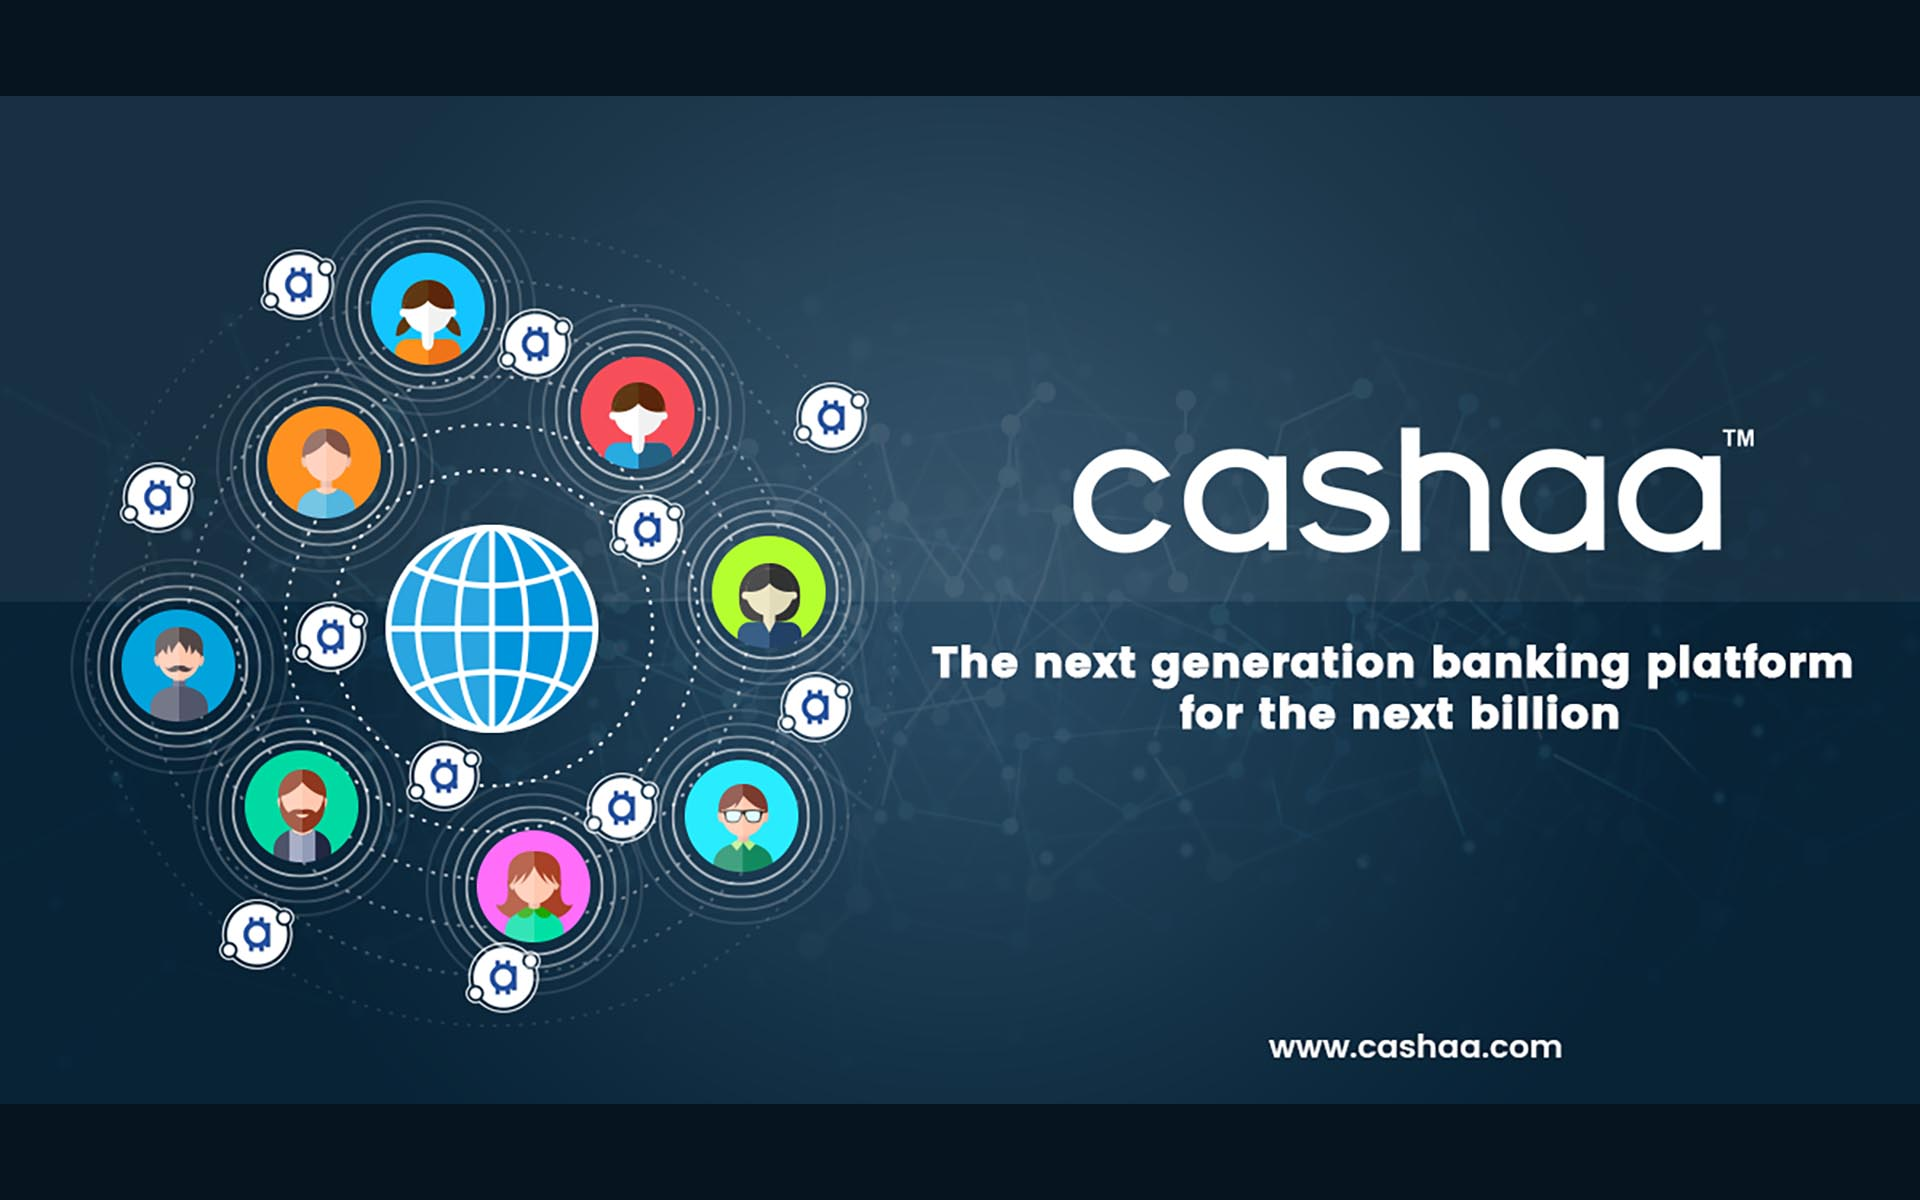 Cashaa to Partner with Agrello to Offer Borderless Financial Products